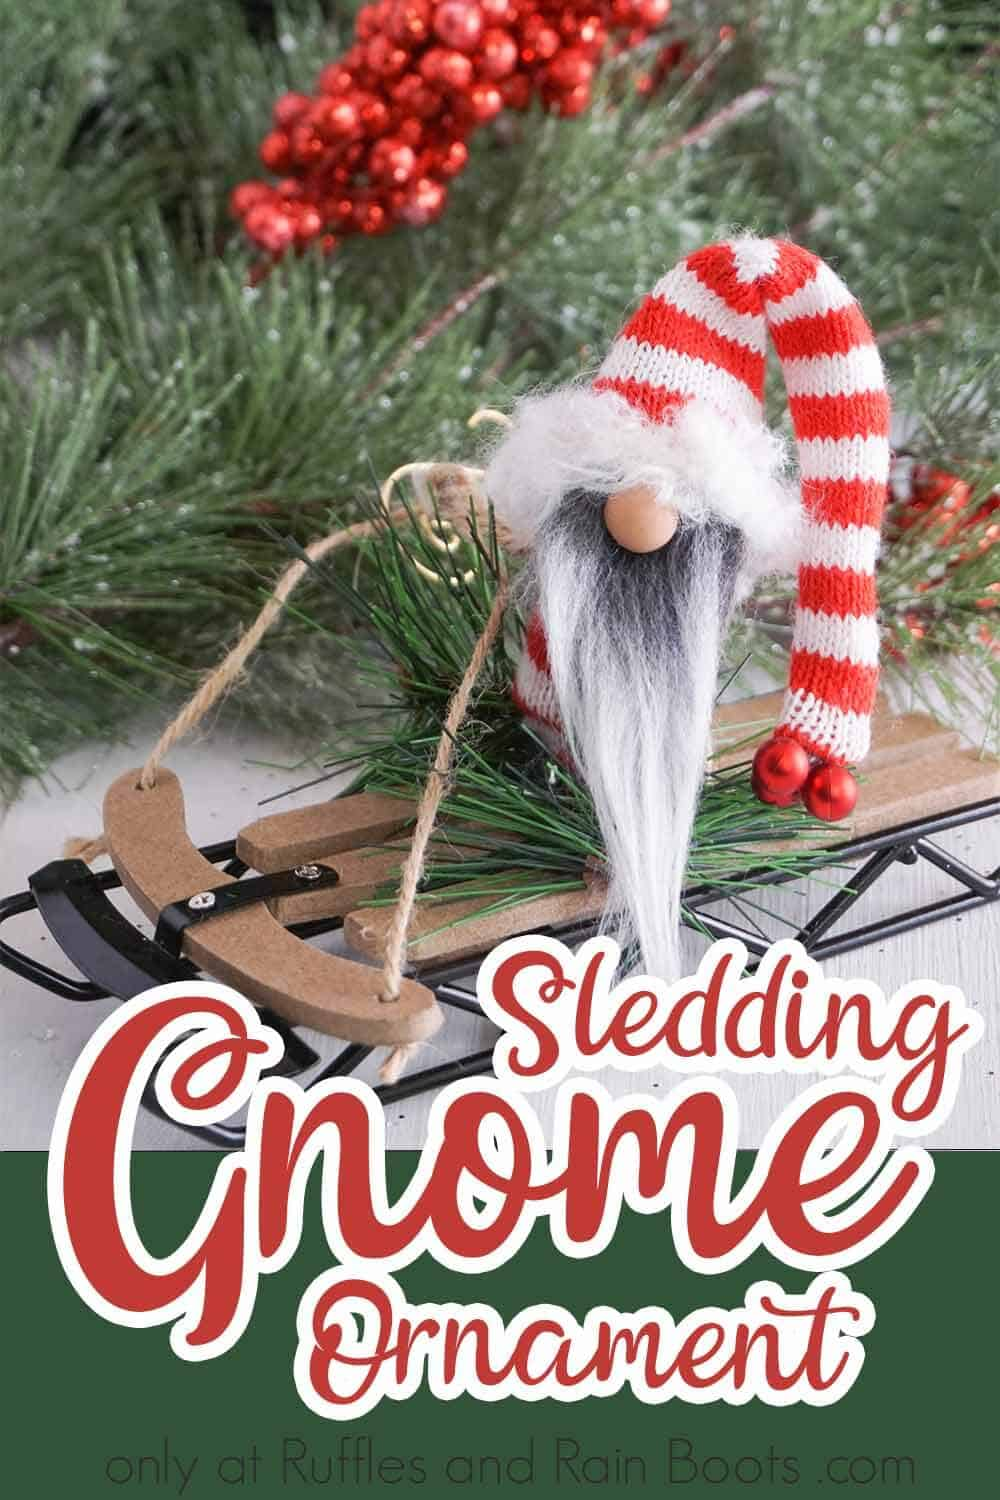 closeup of diy gnome ornament with text which reads sledding gnome ornament